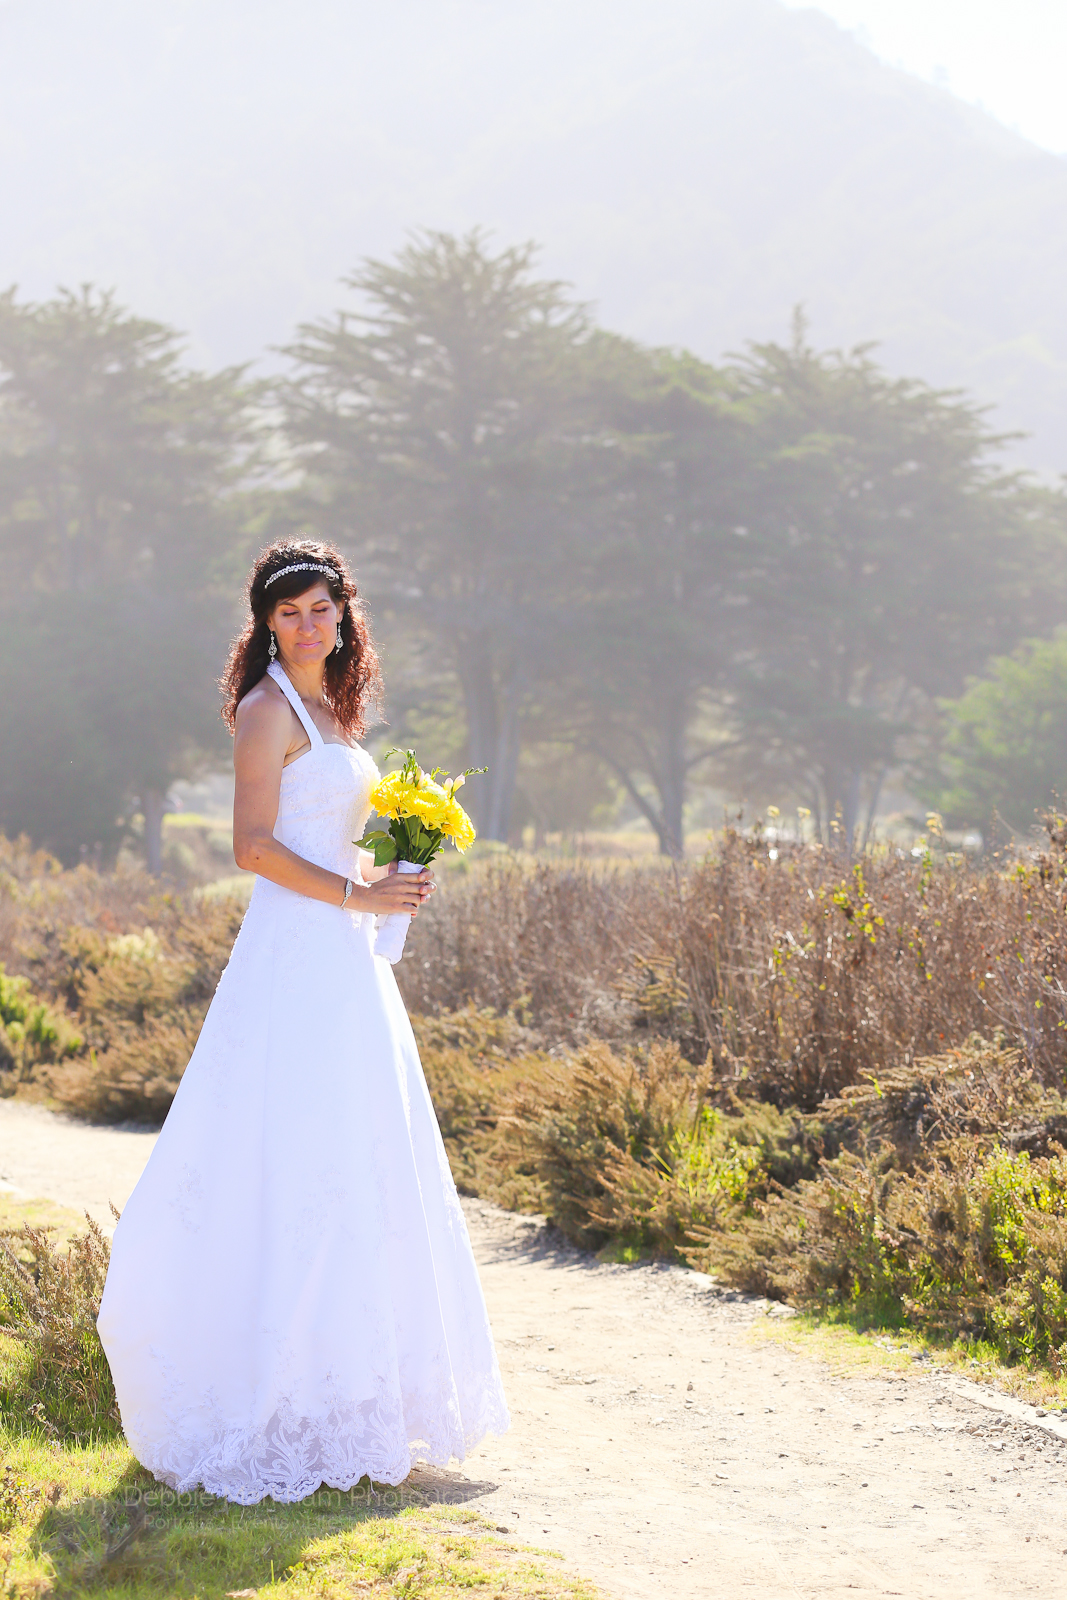 destination-wedding_small-wedding_big-sur_california-coast_ocean-view_gorda_wedding-photographer_debbie-markham-8611